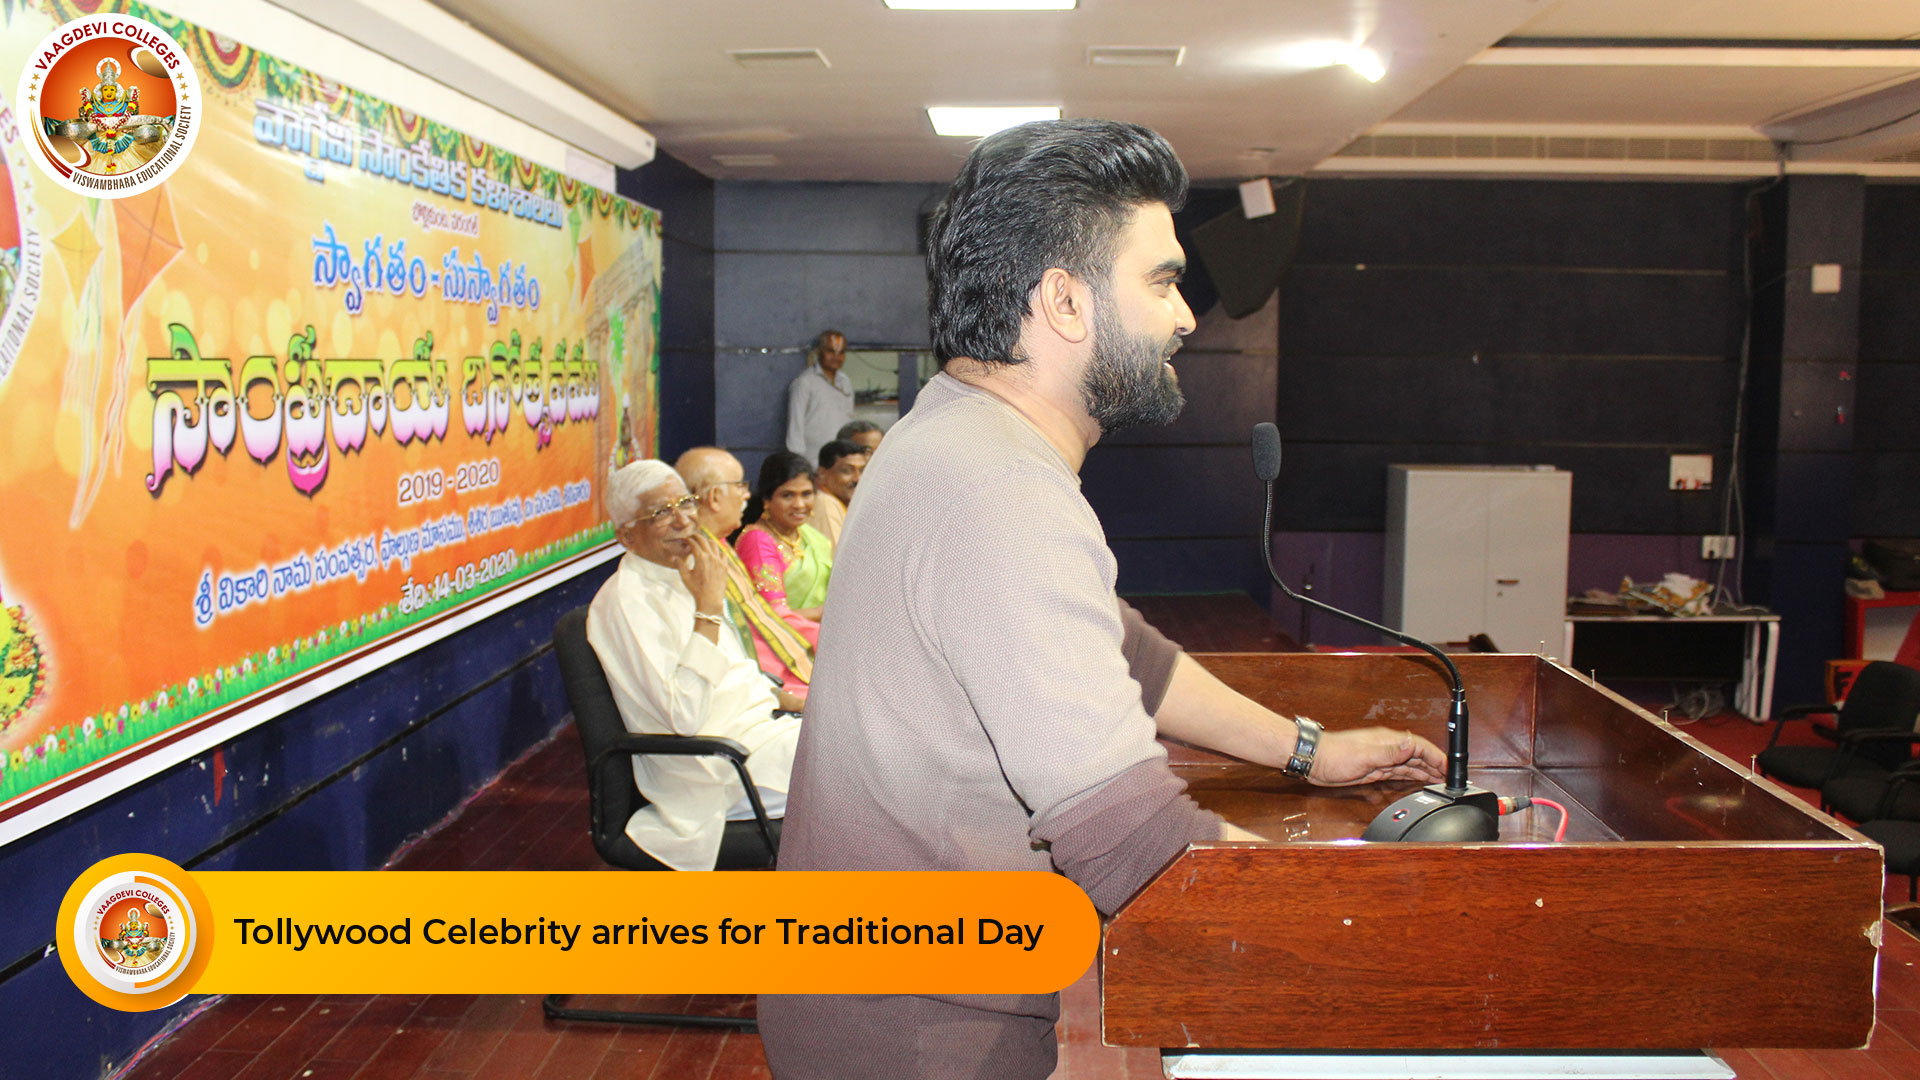 Tollywood Celebrity arrives for Traditional Day